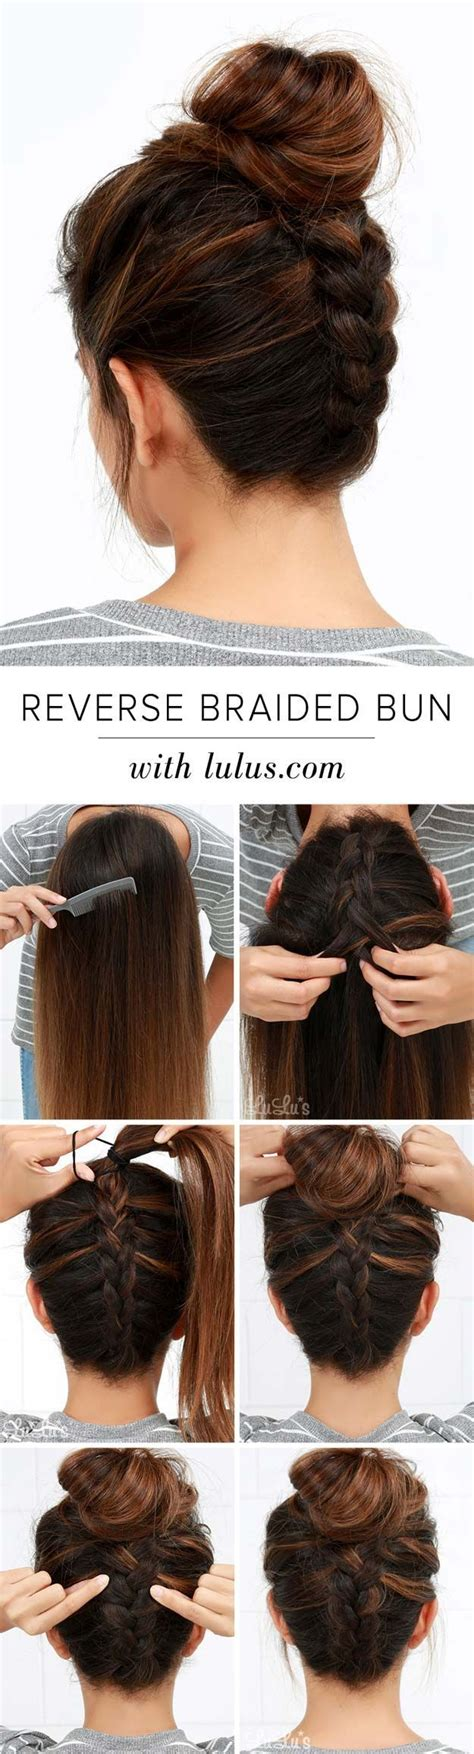 and easy hairstyles for medium cool and easy diy hairstyles reversed braided bun